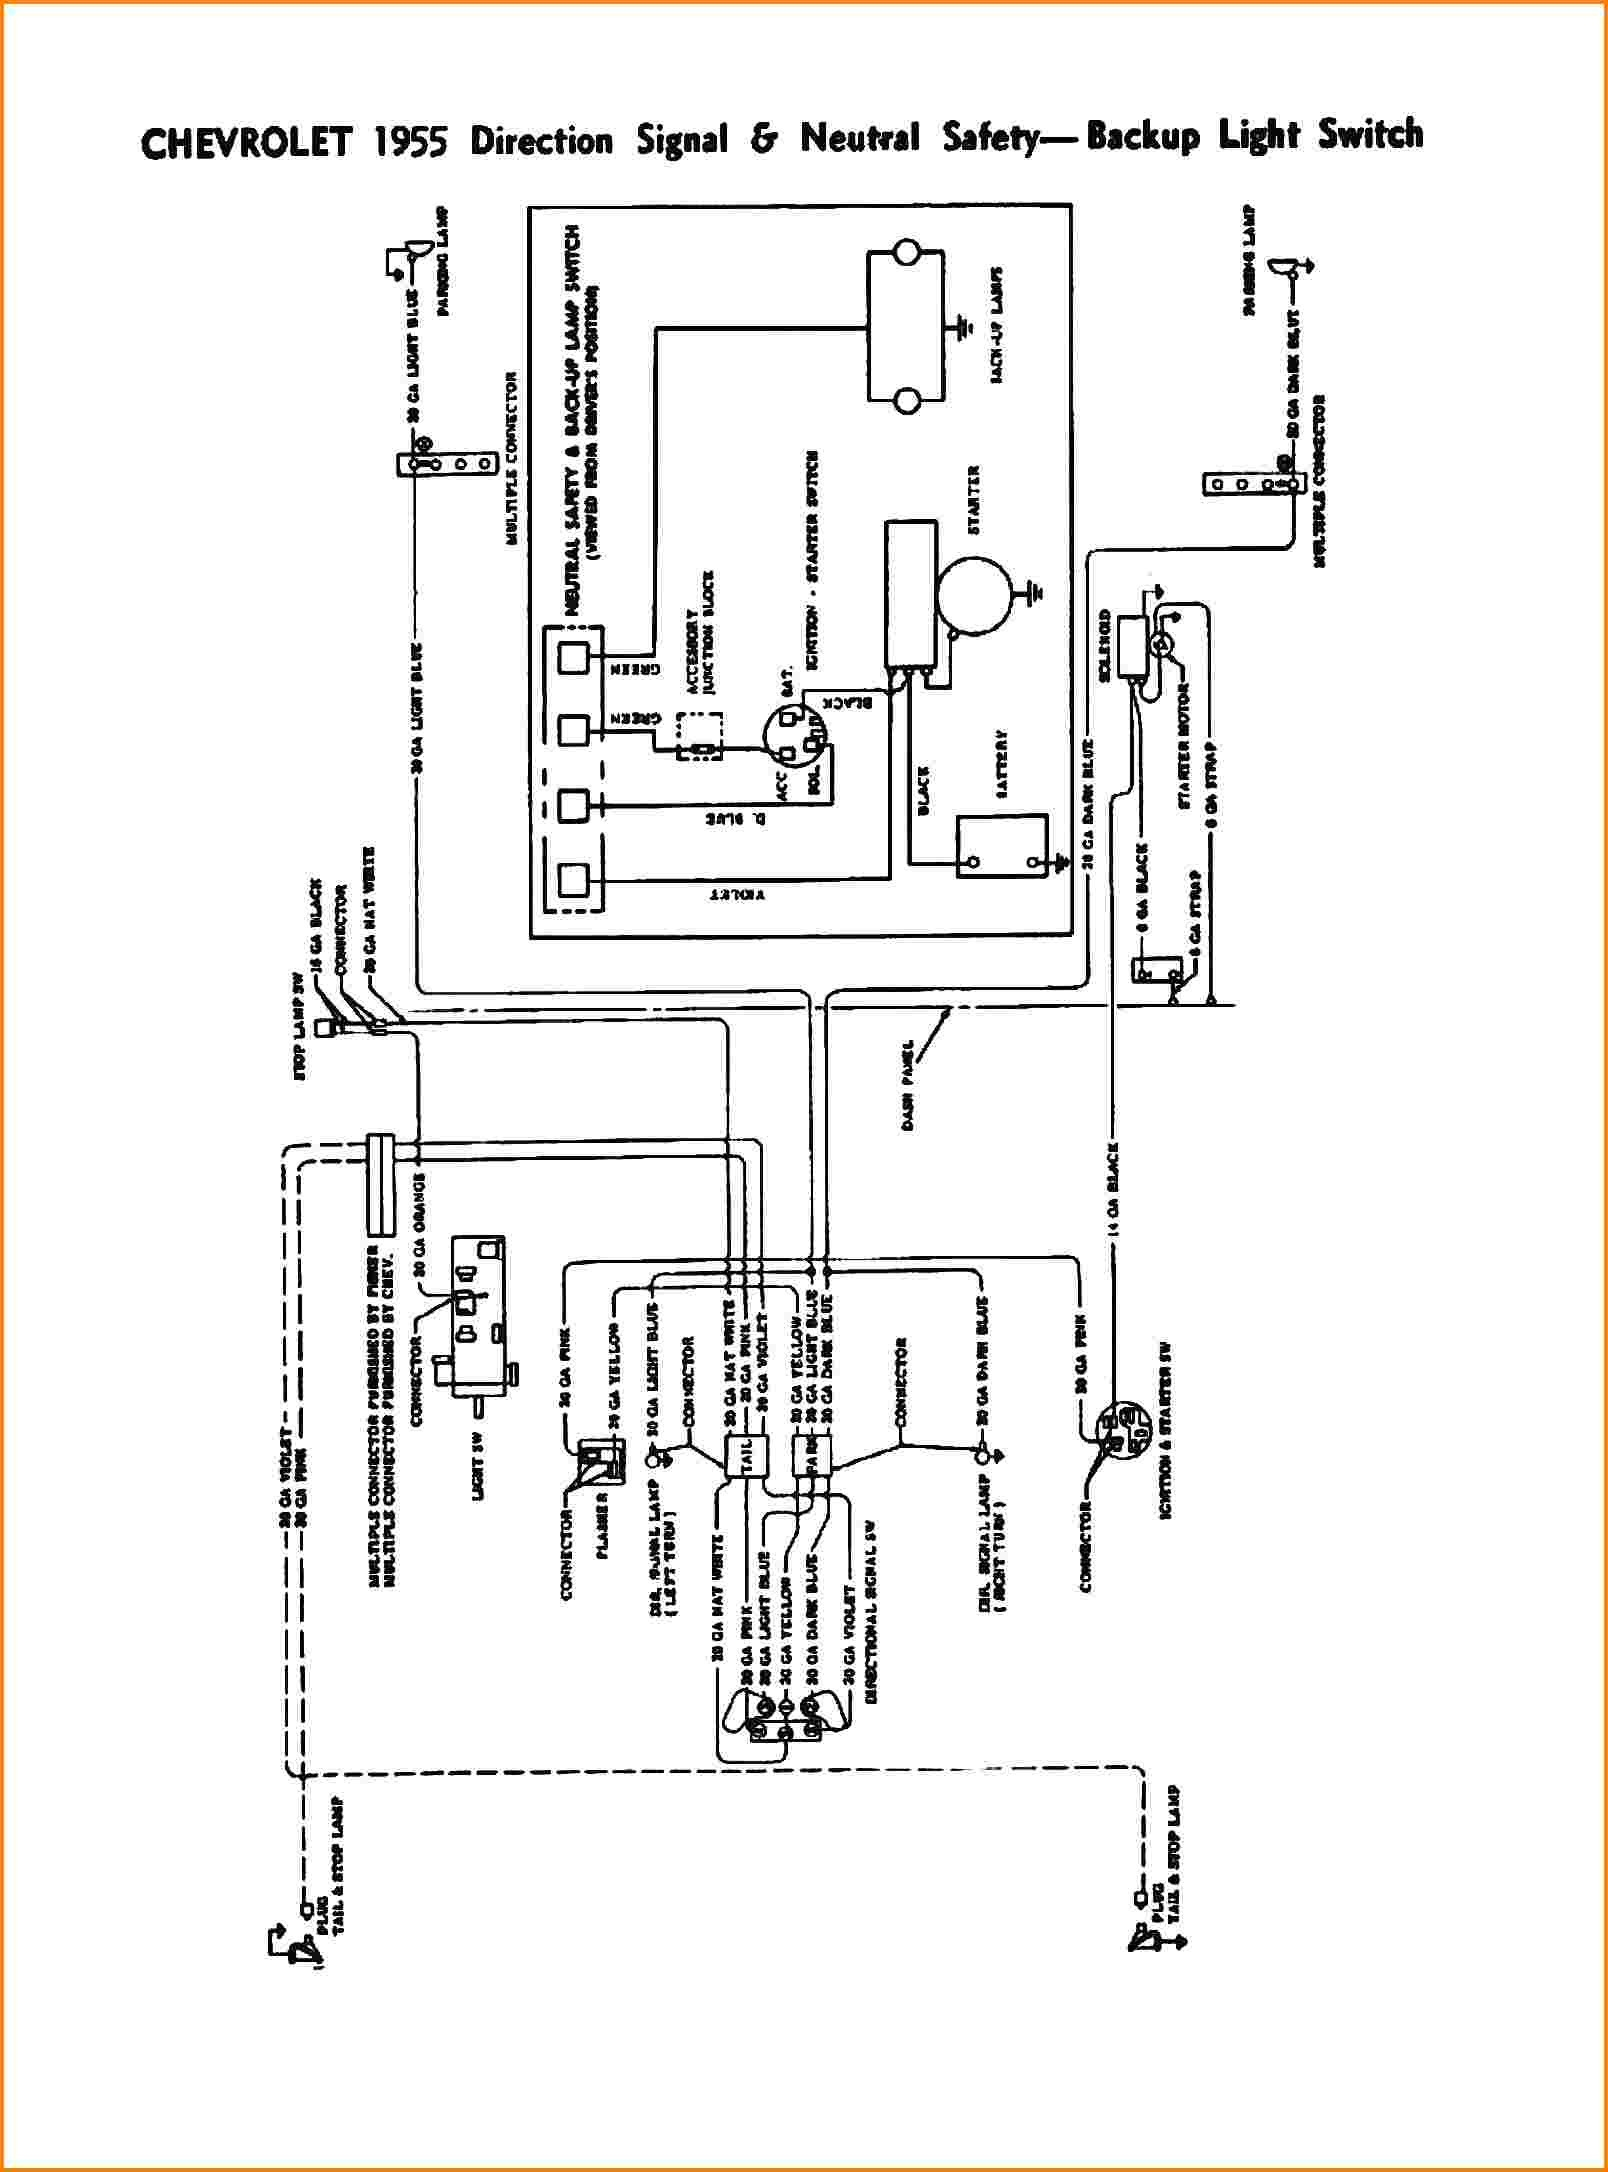 square d air compressor pressure switch wiring diagram ... square d air pressure switch wiring diagram square d pumptrol pressure switch wiring diagram